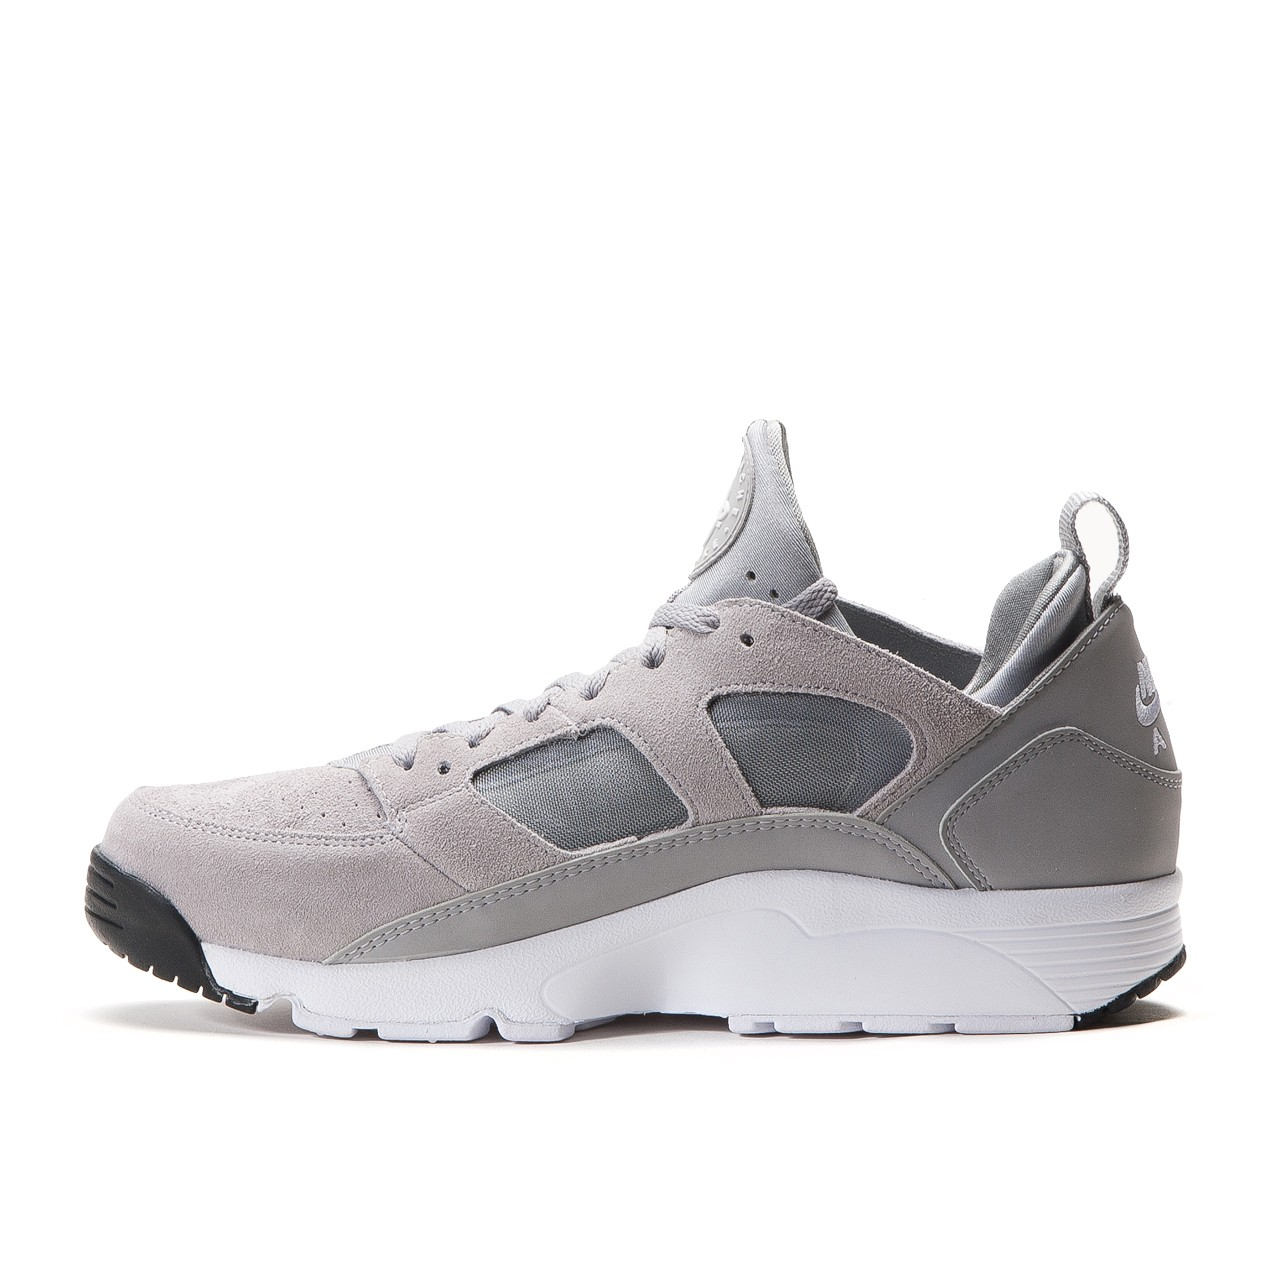 best loved df5b9 1694b Nike Air Trainer Huarache Low Wolf Grey retails at €119.90 (approximately  RM587.50) via Allike Store.